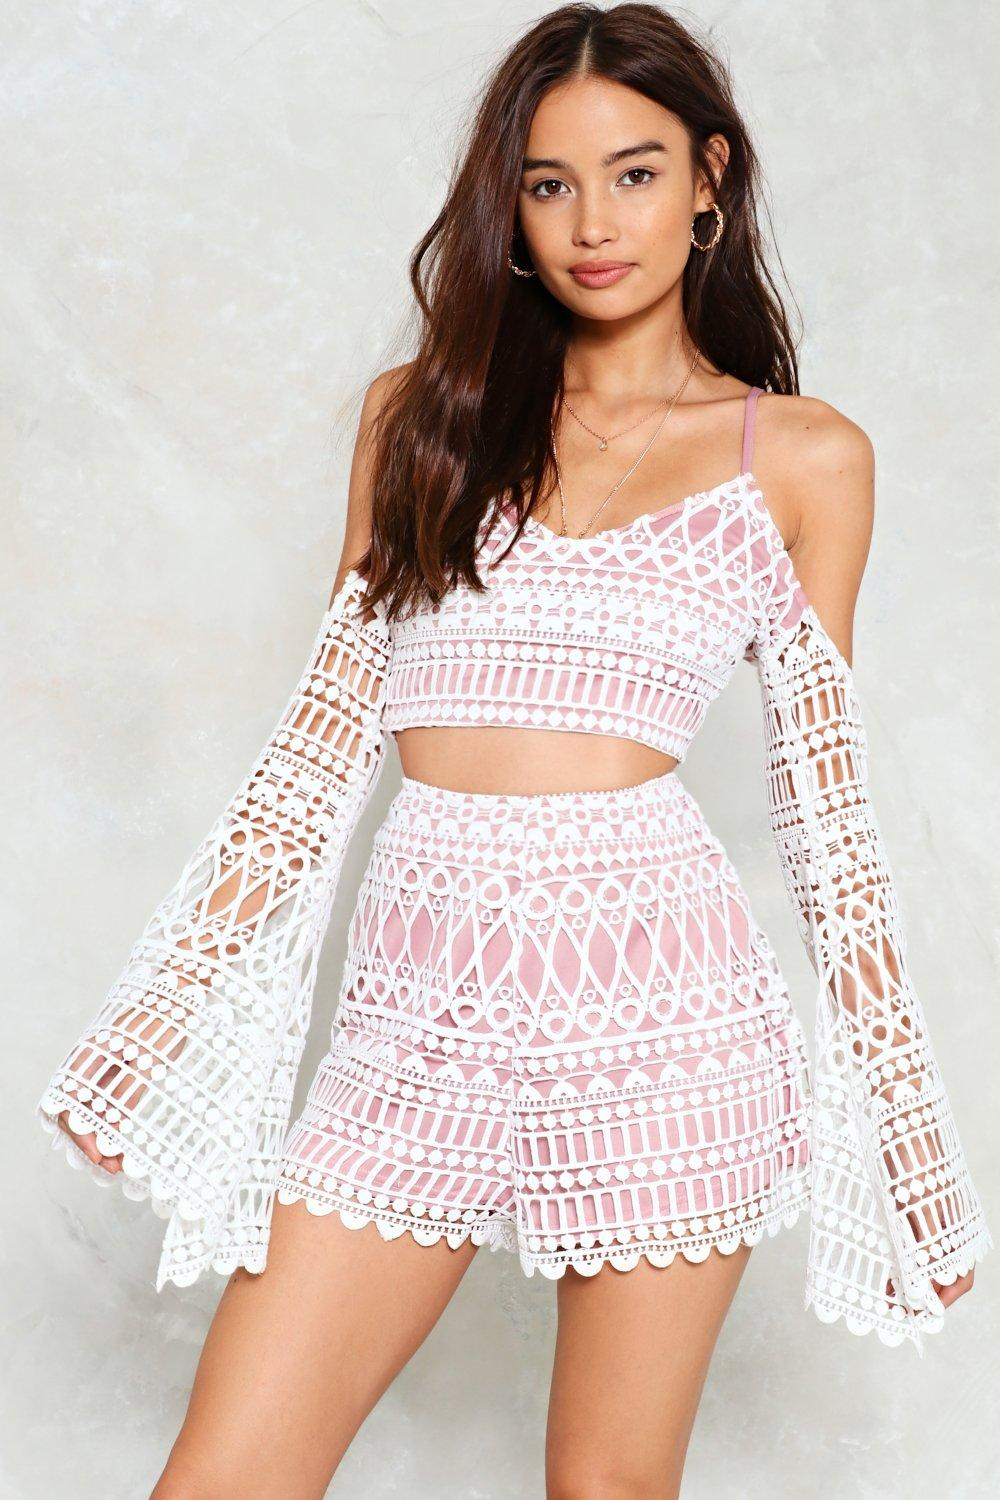 lover undercover crochet top and shorts set pmnarli